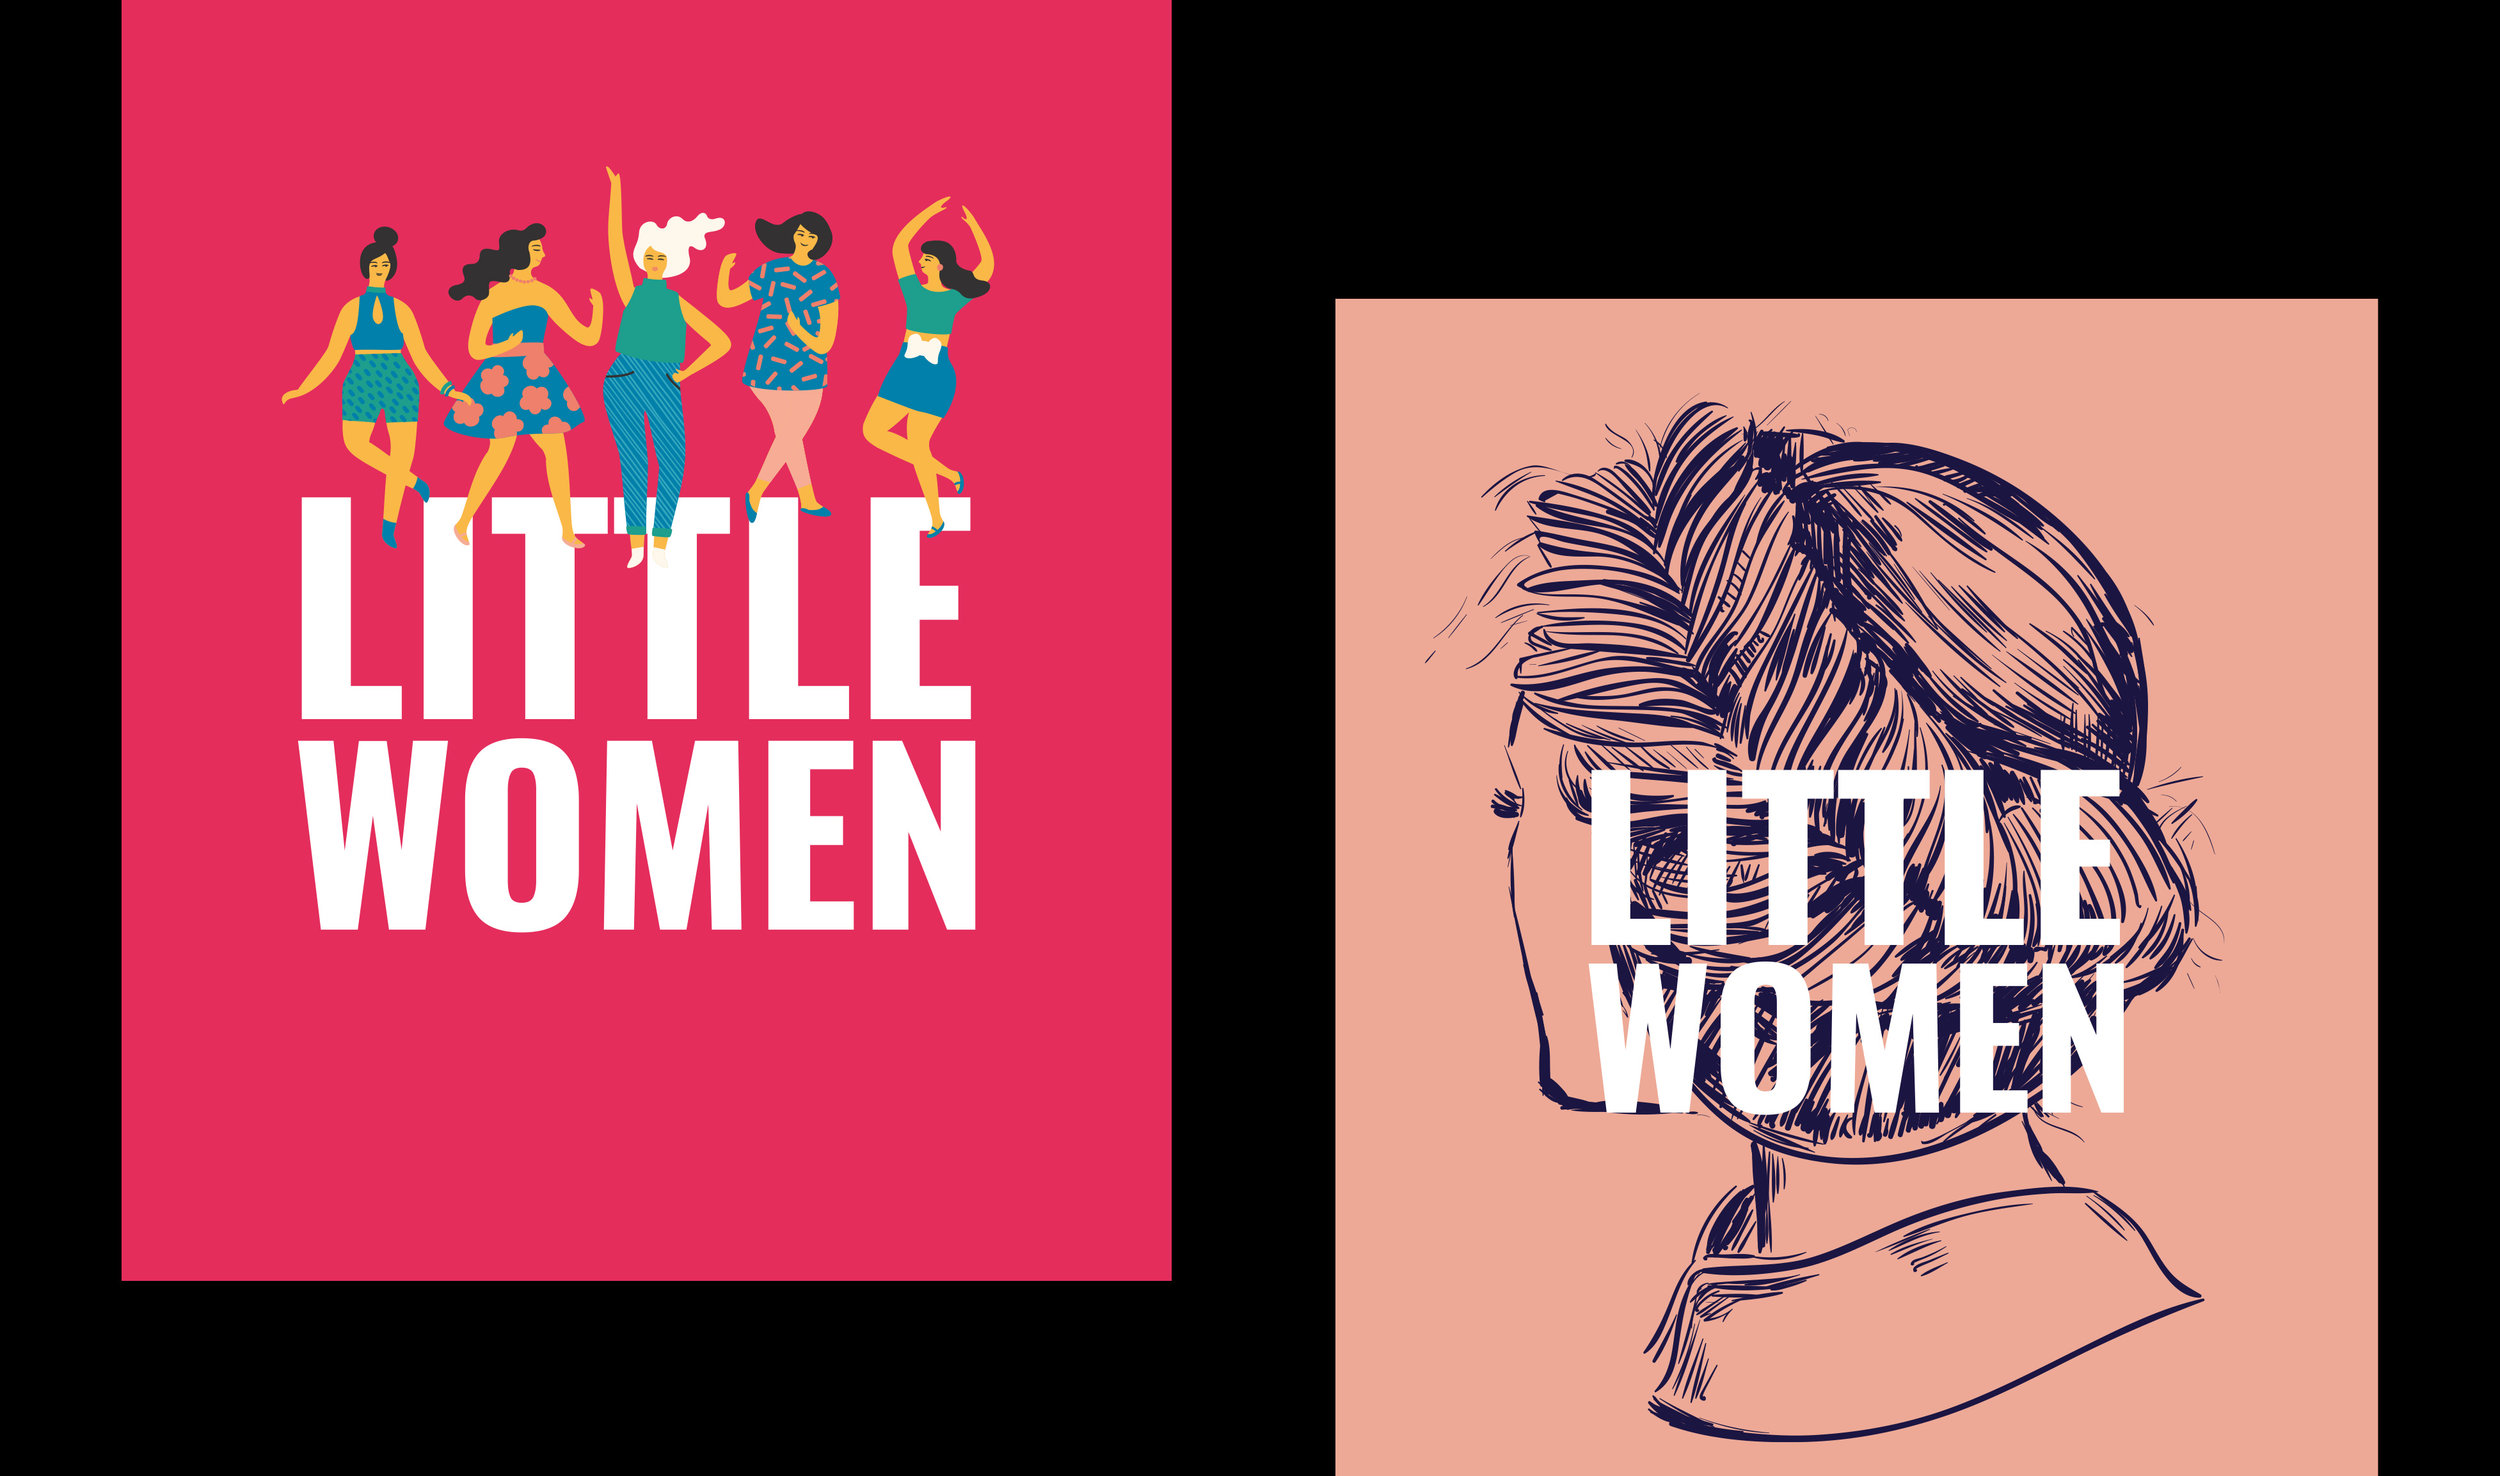 Above: Initial concepts for the Little Women campaign